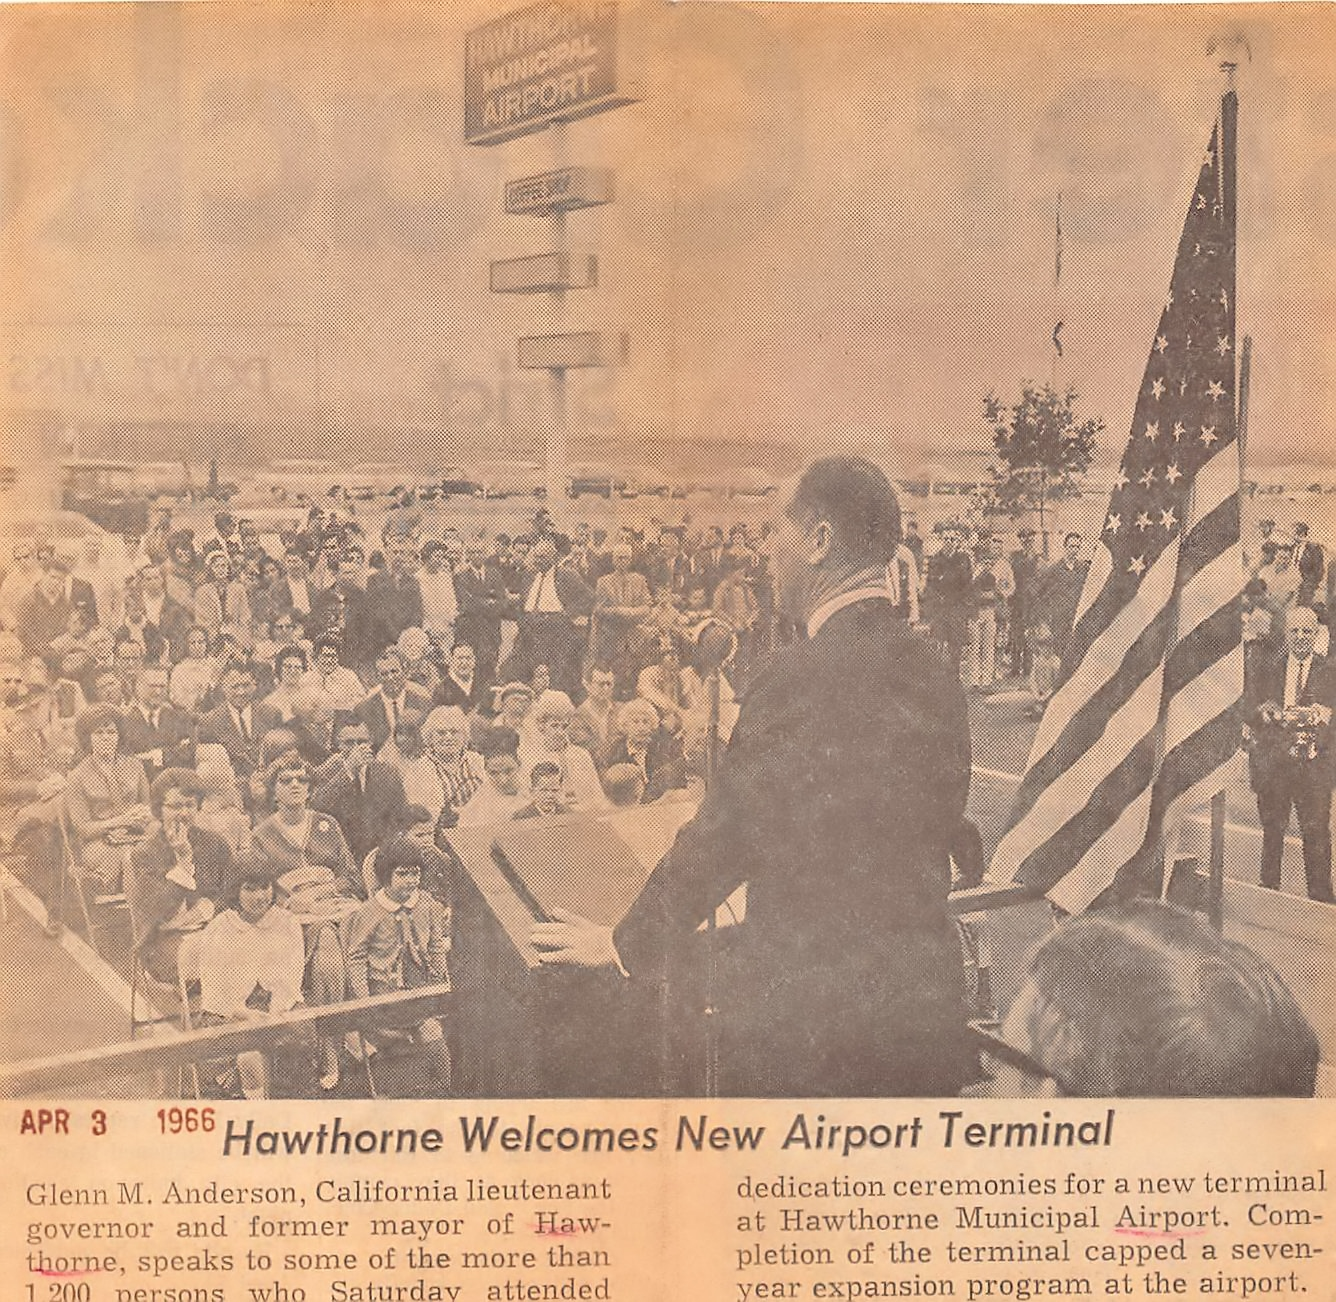 Glenn Anderson speaks at the dedication for the new terminal at Hawthorne Muncipal Airport on April 2, 1966. Daily Breeze, April 3, 1966.